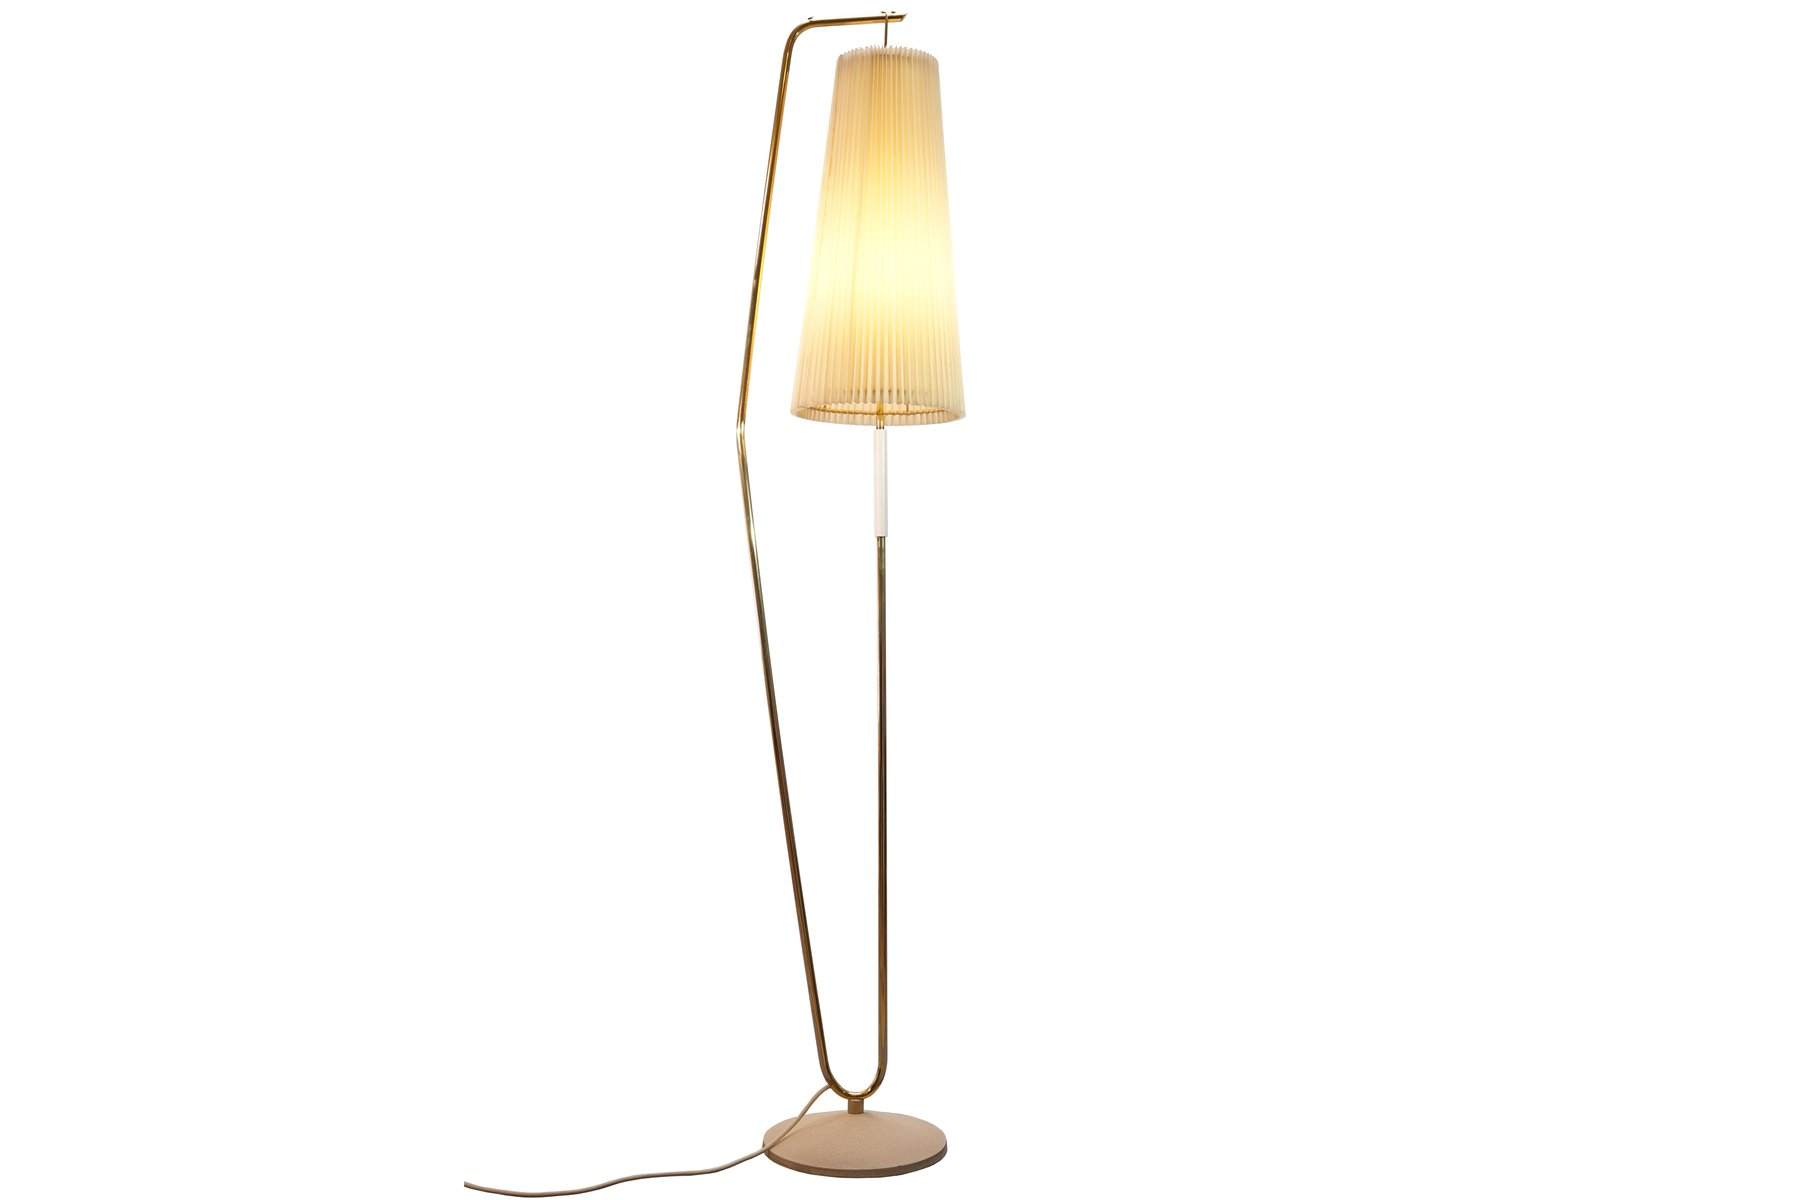 Floor lamp with off white shade 1950s for sale at pamono for 1950s floor lamps